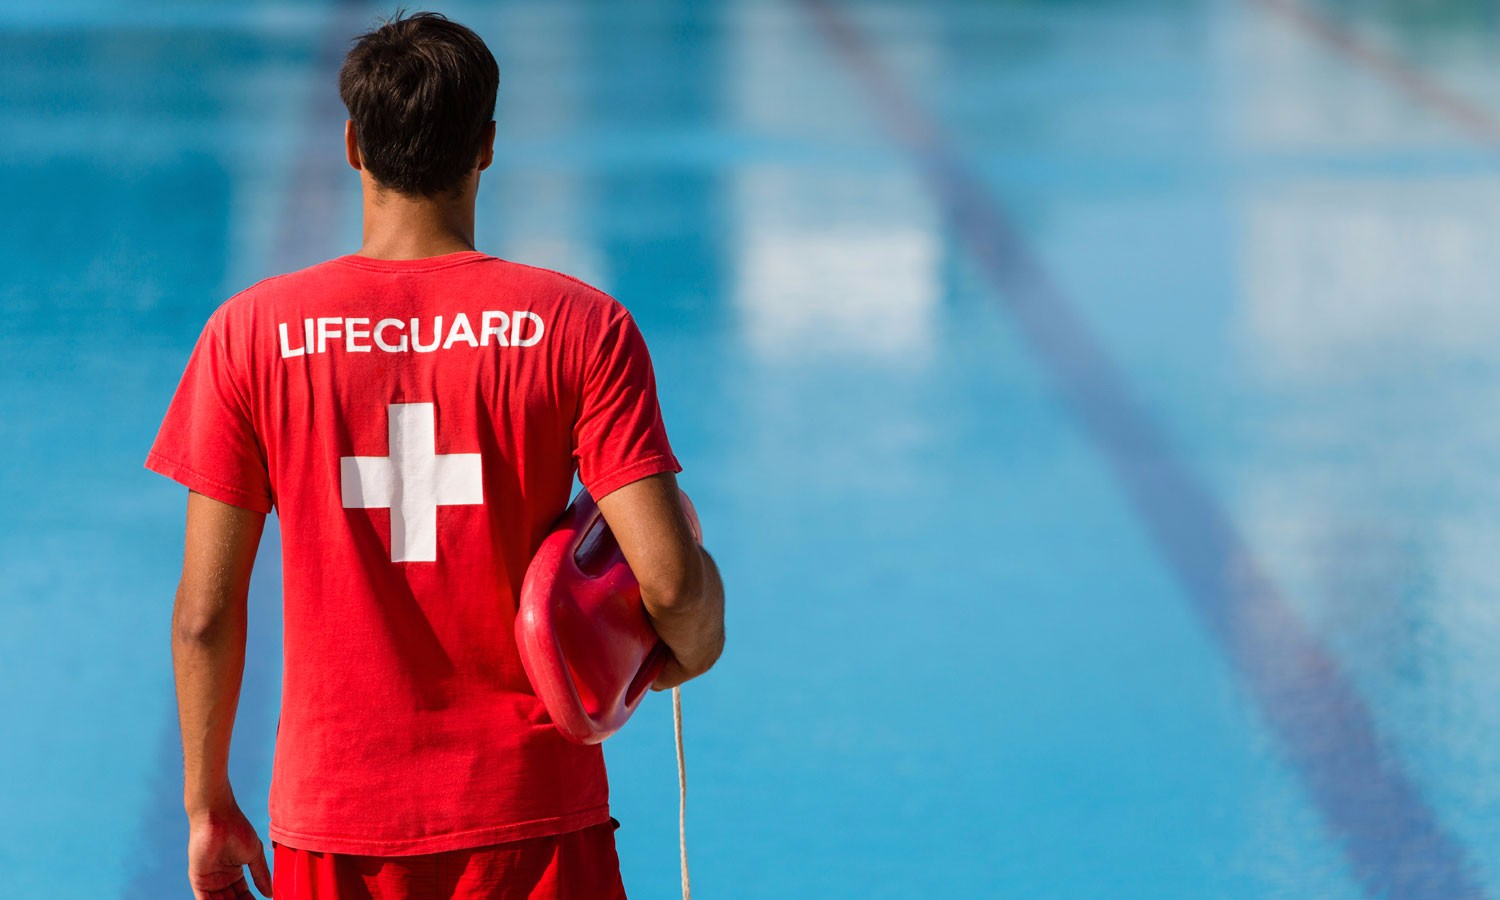 LIfeguarding Certification | Hocking College | American Red Cross Lifeguard Training and Certification (25 hour class)<br><br>Leslie Yinger